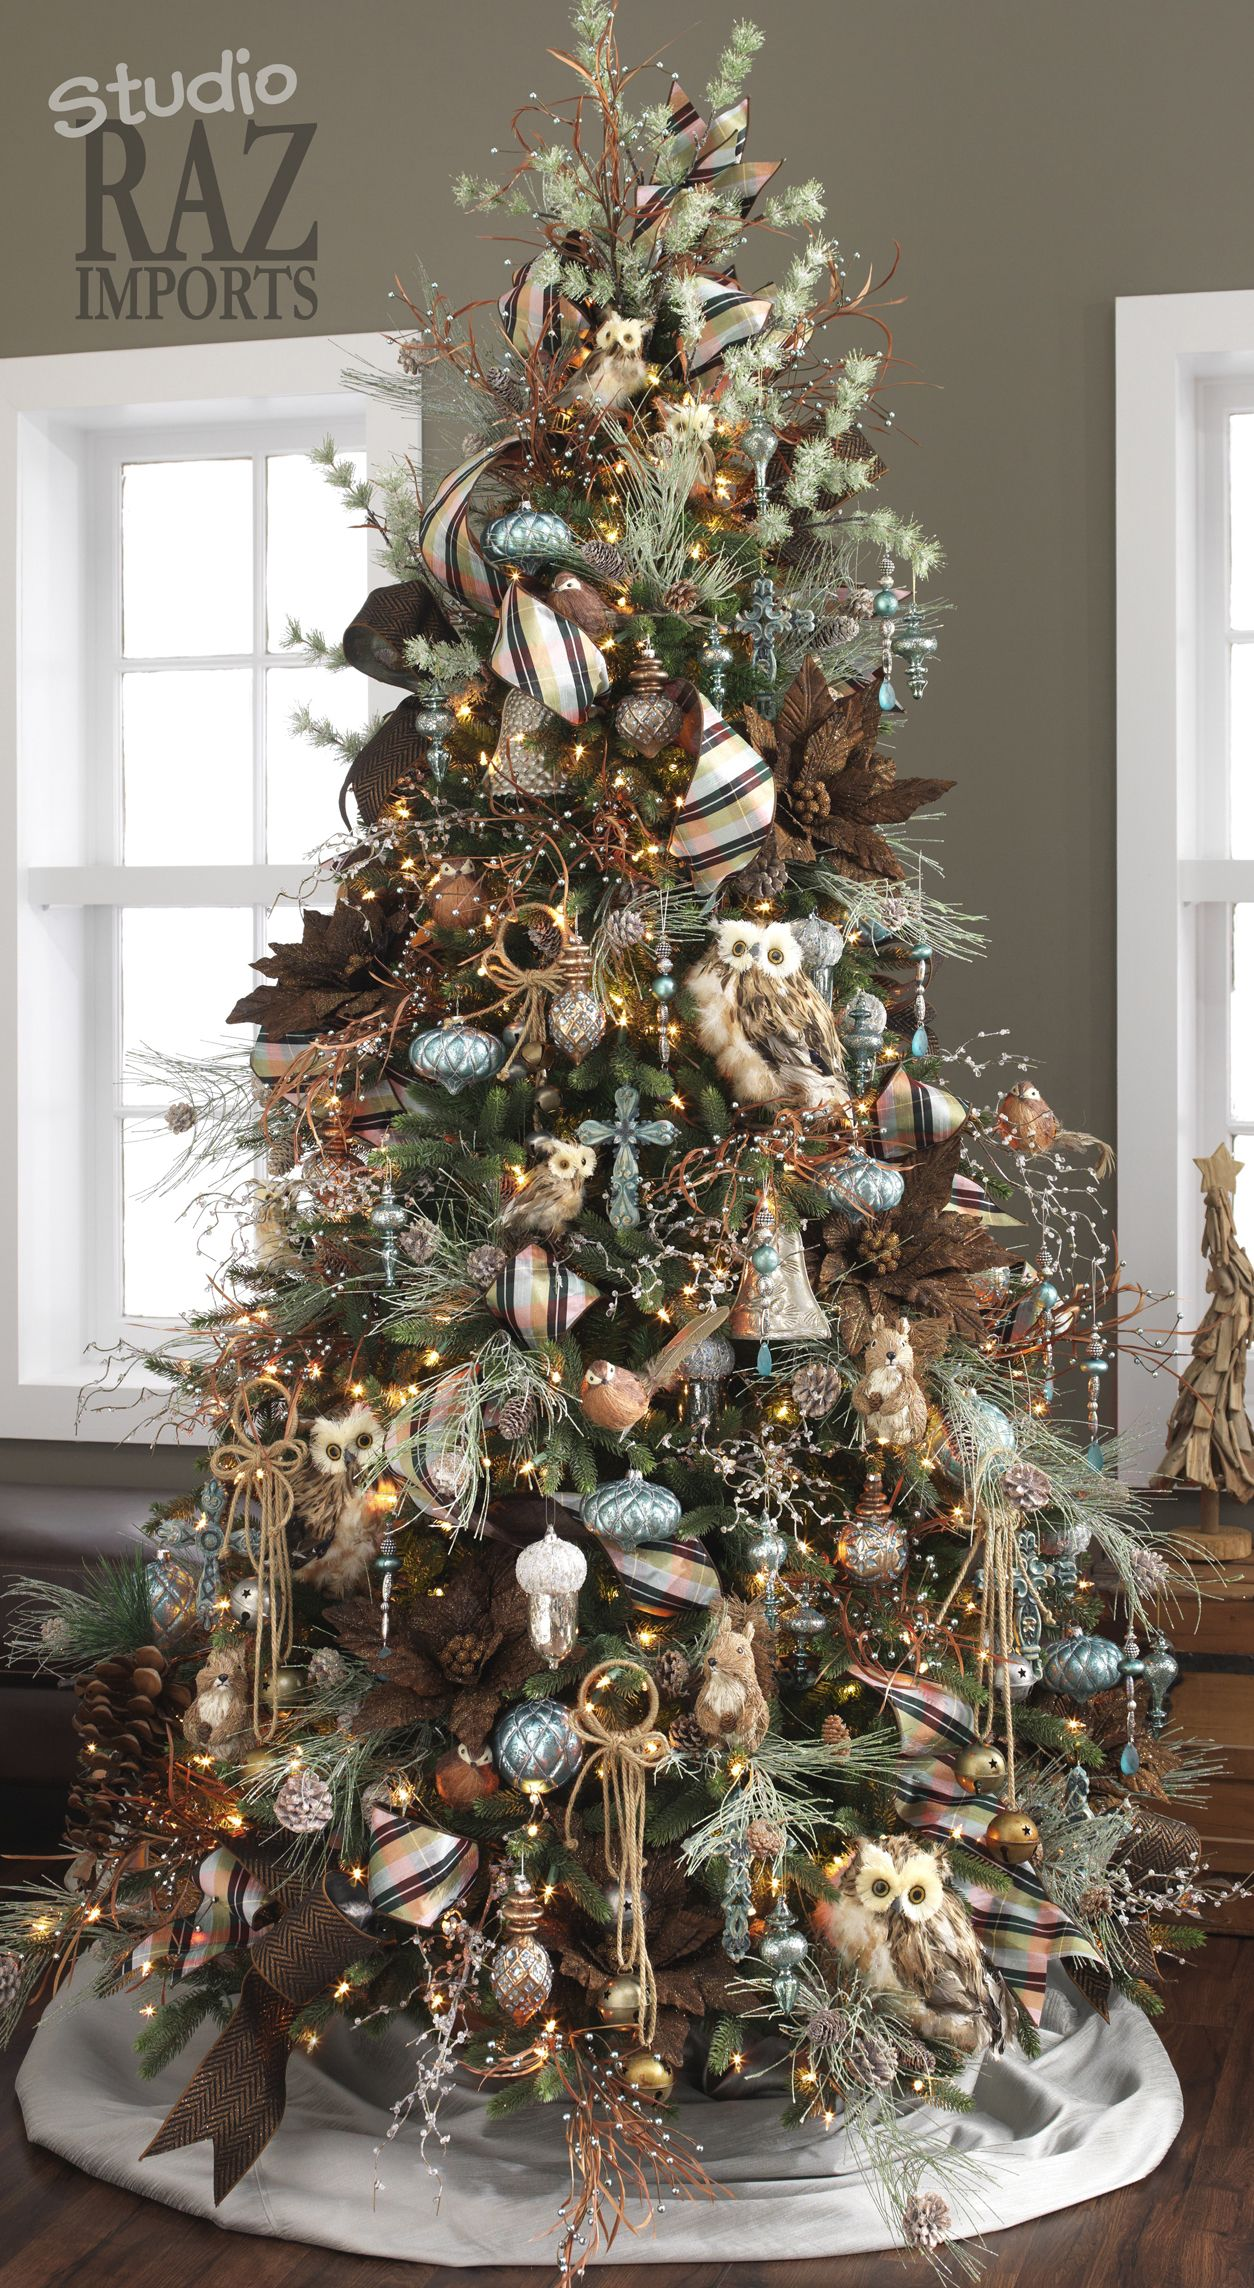 Rustic Christmas Decorations 60 Gorgeously Decorated Christmas Trees From Raz Imports Best